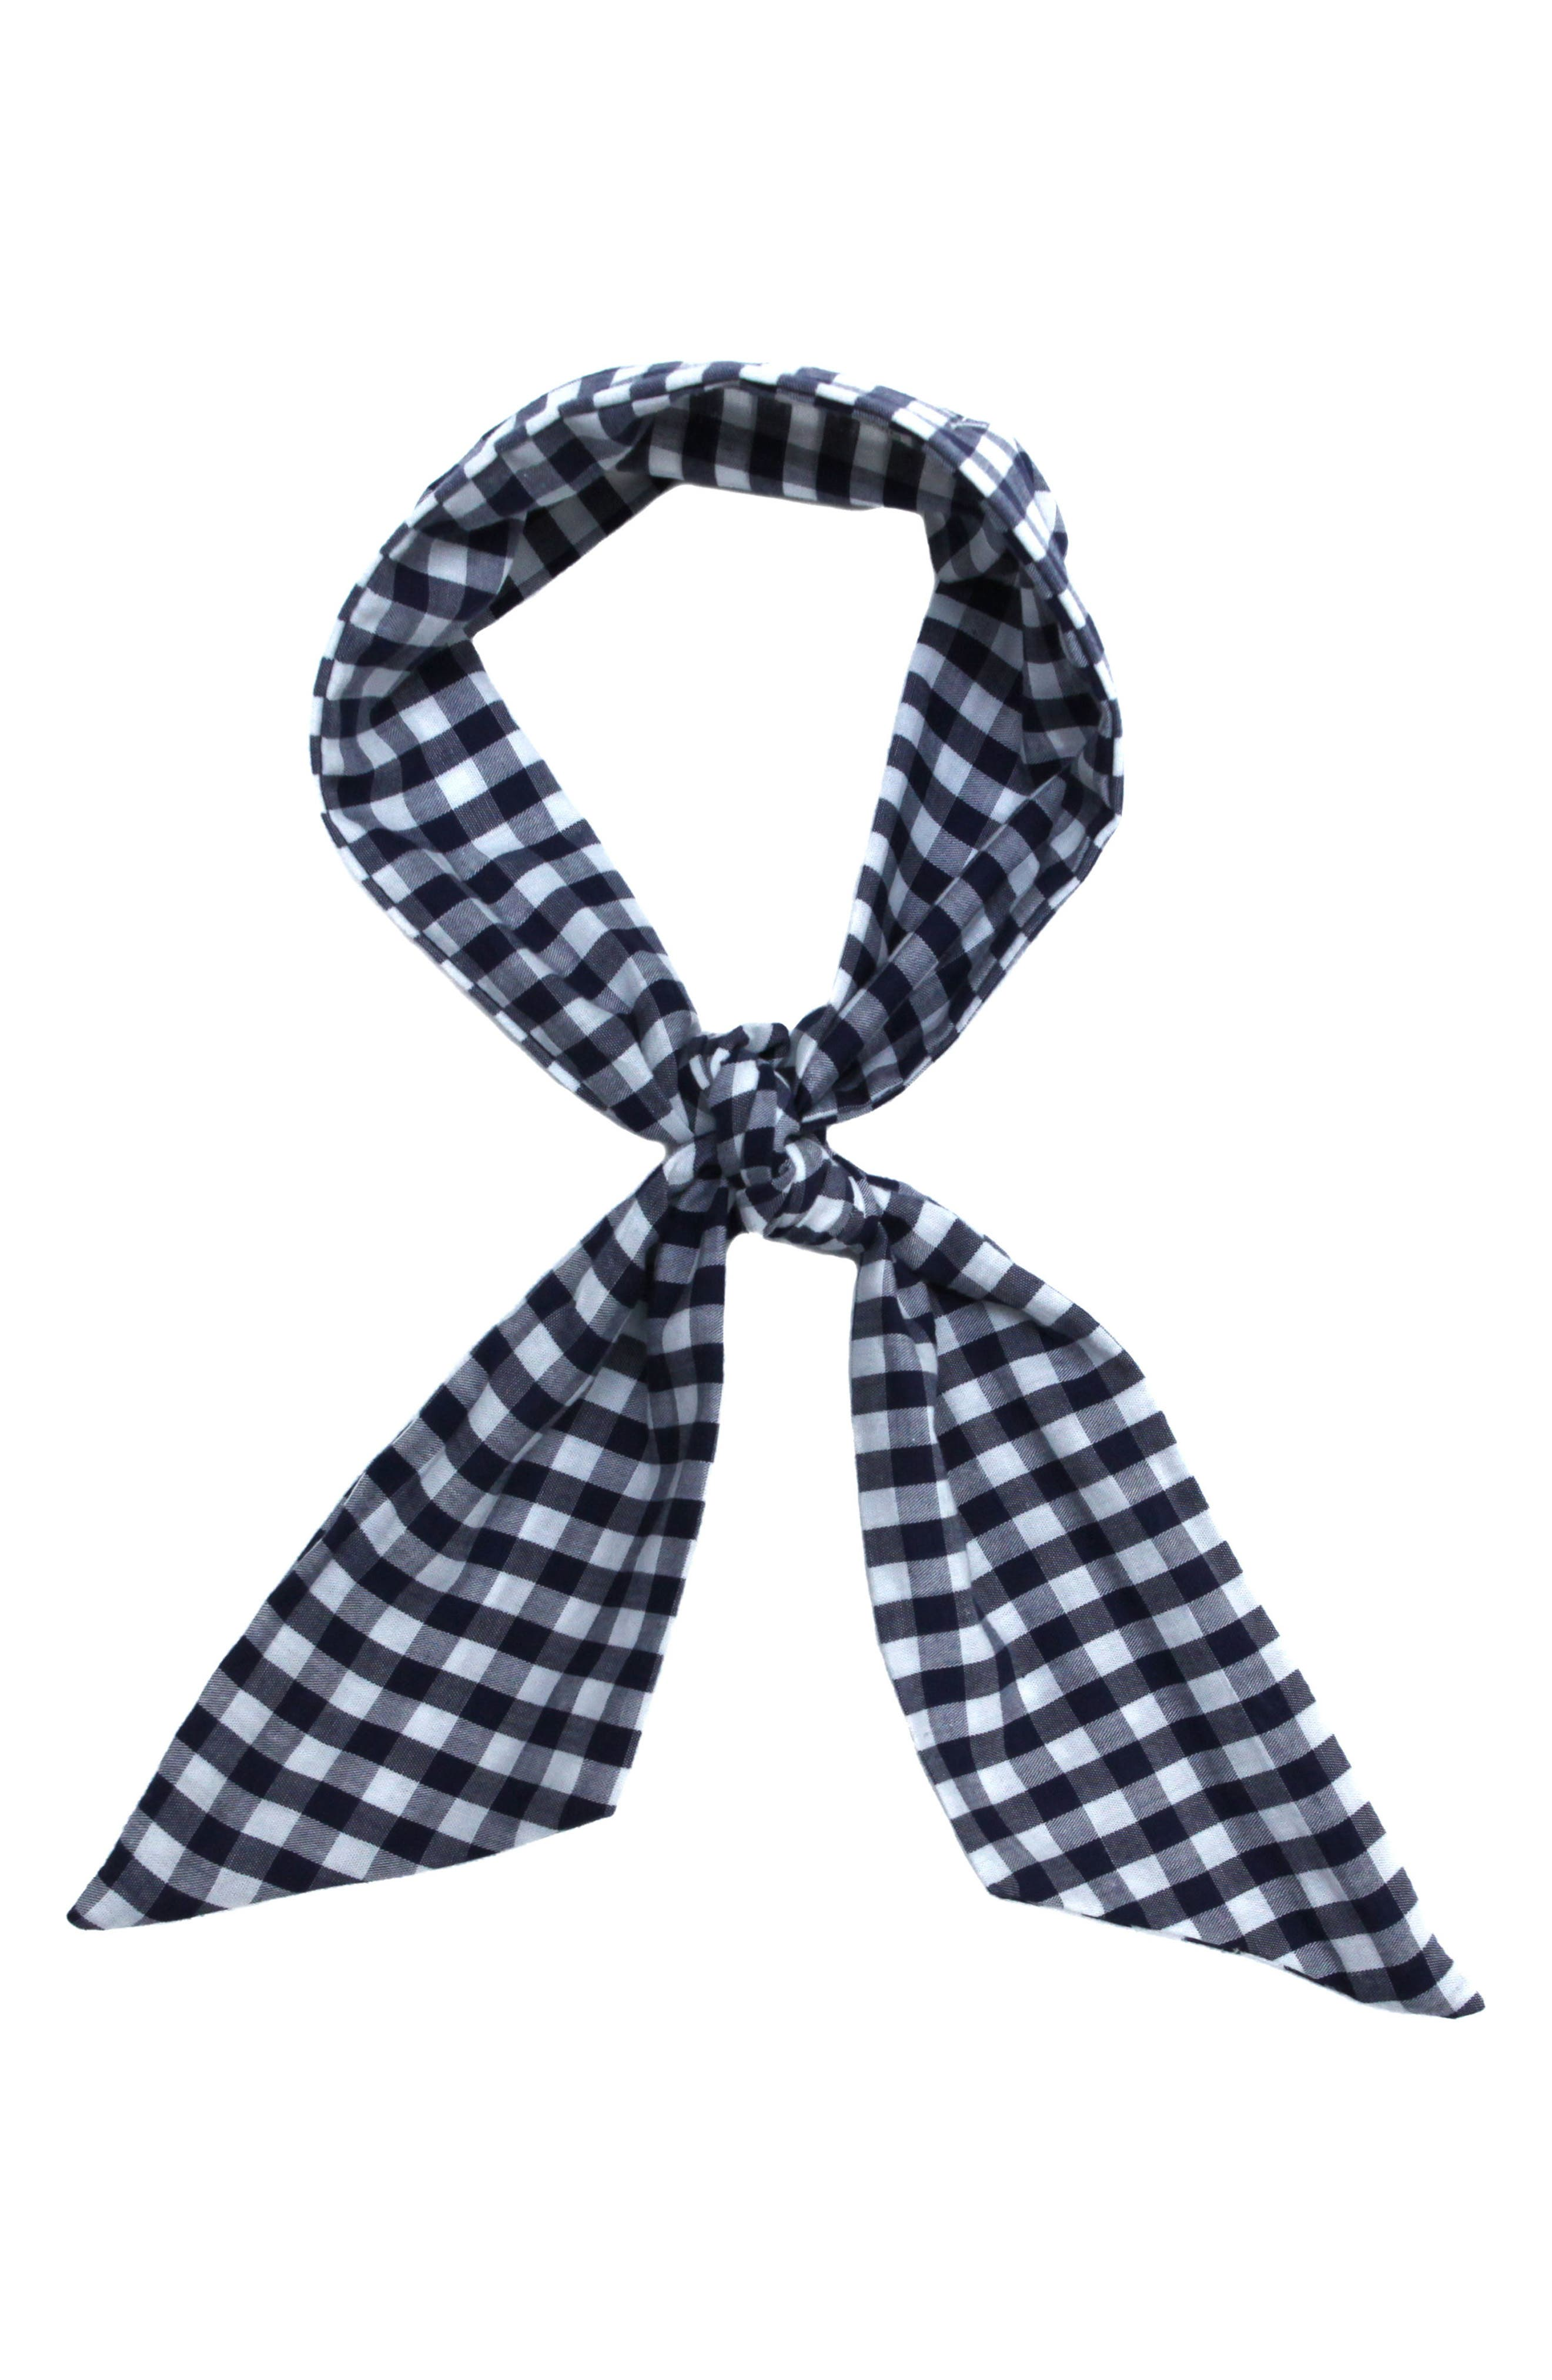 Alternate Image 1 Selected - Donni Charm Gingham Wire Scarf